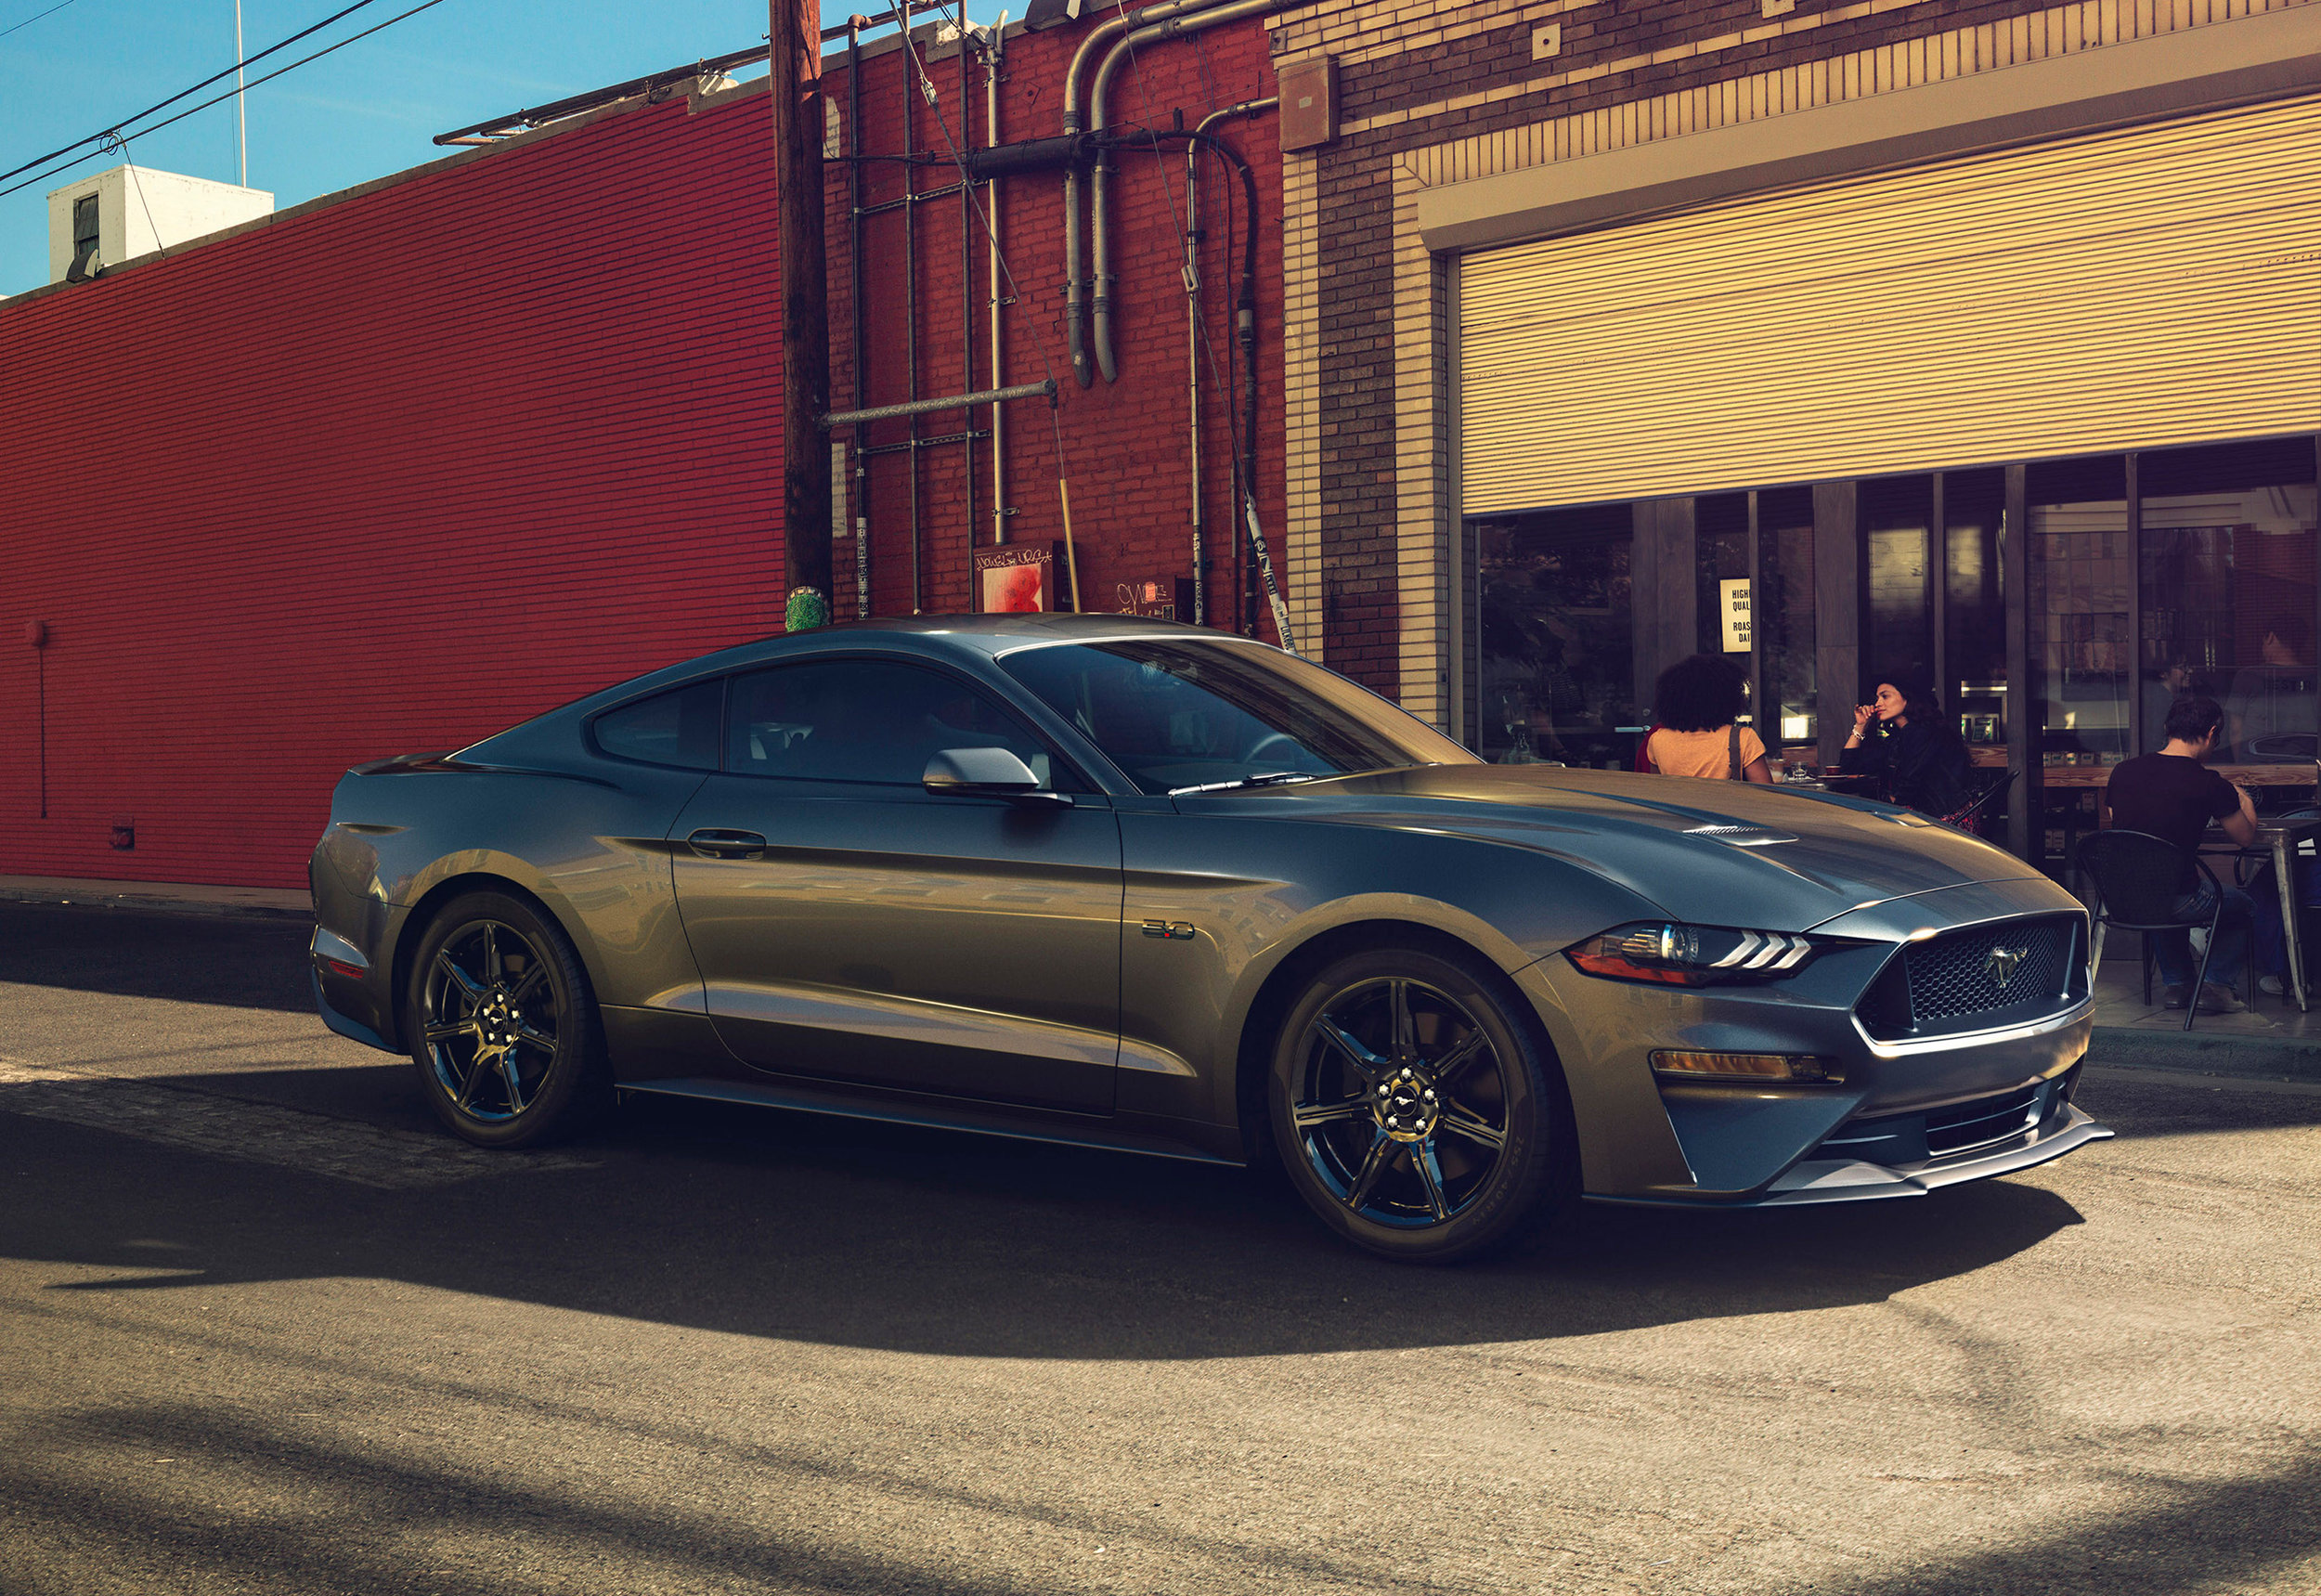 New-Ford-Mustang-V8-GT-with-Performace-Pack-in-Magnetic-1.jpg